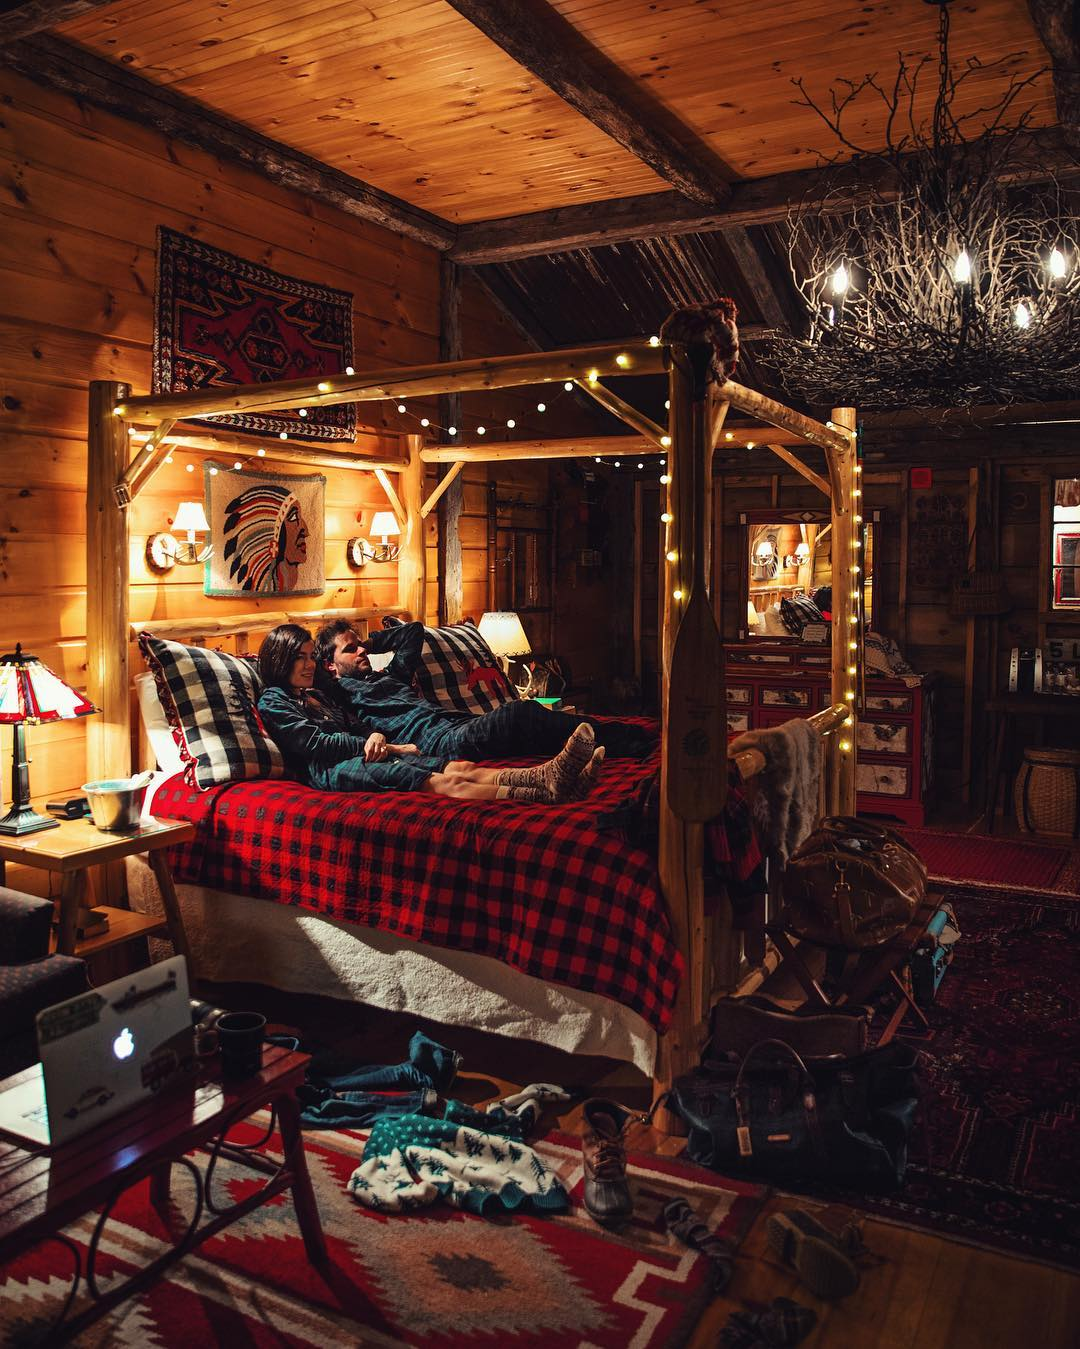 Lodge Room Design: 27 Log Cabin Interior Design Ideas